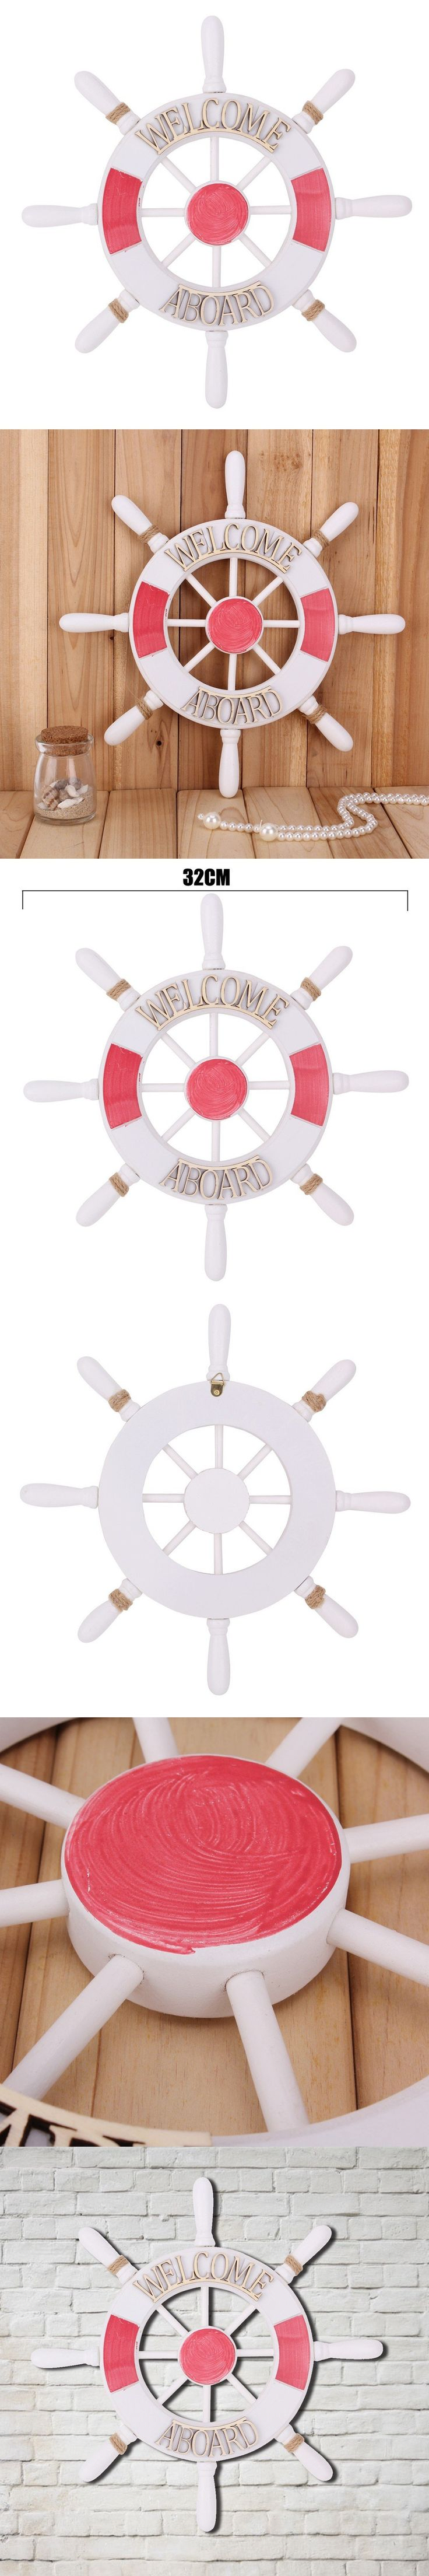 Welcome aboard boat ships life ring clock - 32cm Wall House Babyroom Home Decoration Nautical Mediterranean Style Nordic Wooden Boat Wheel Rudder Helm Welcome Aboard